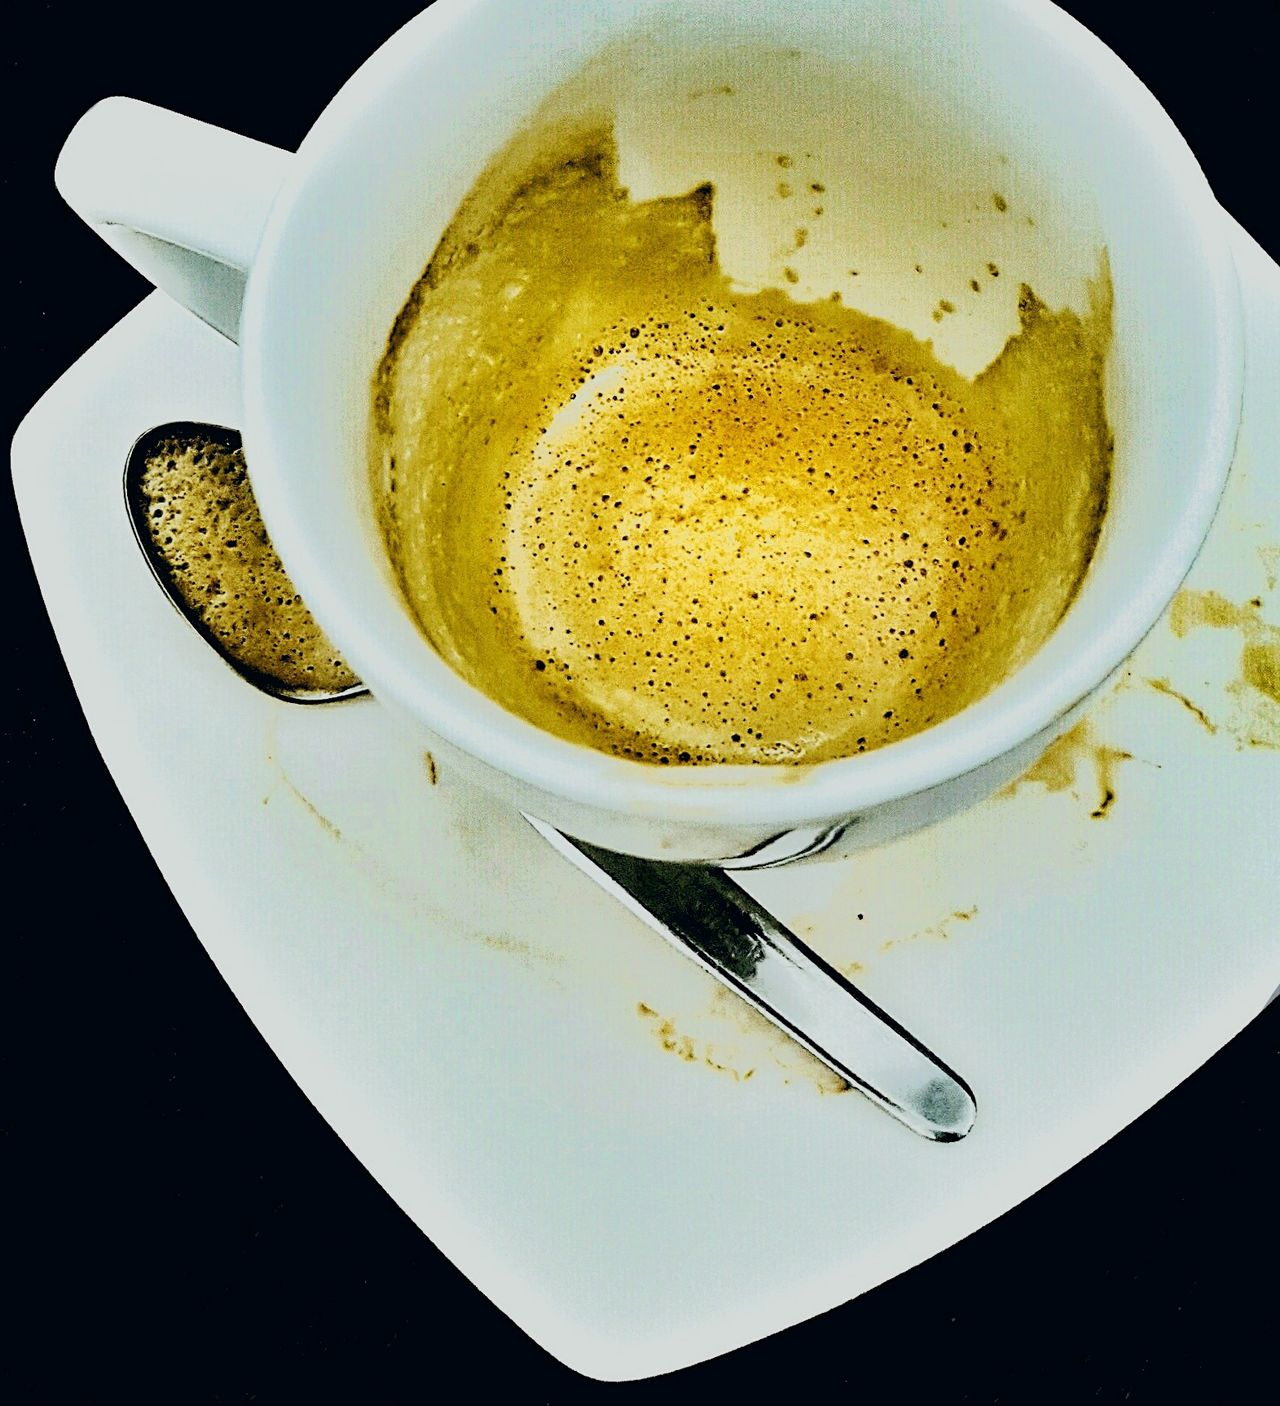 Empty coffe. Drink Coffee Cup Food And Drink Coffee - Drink Cup Close-up Food Coffe Spoon Traces Stain EyEmNewHere